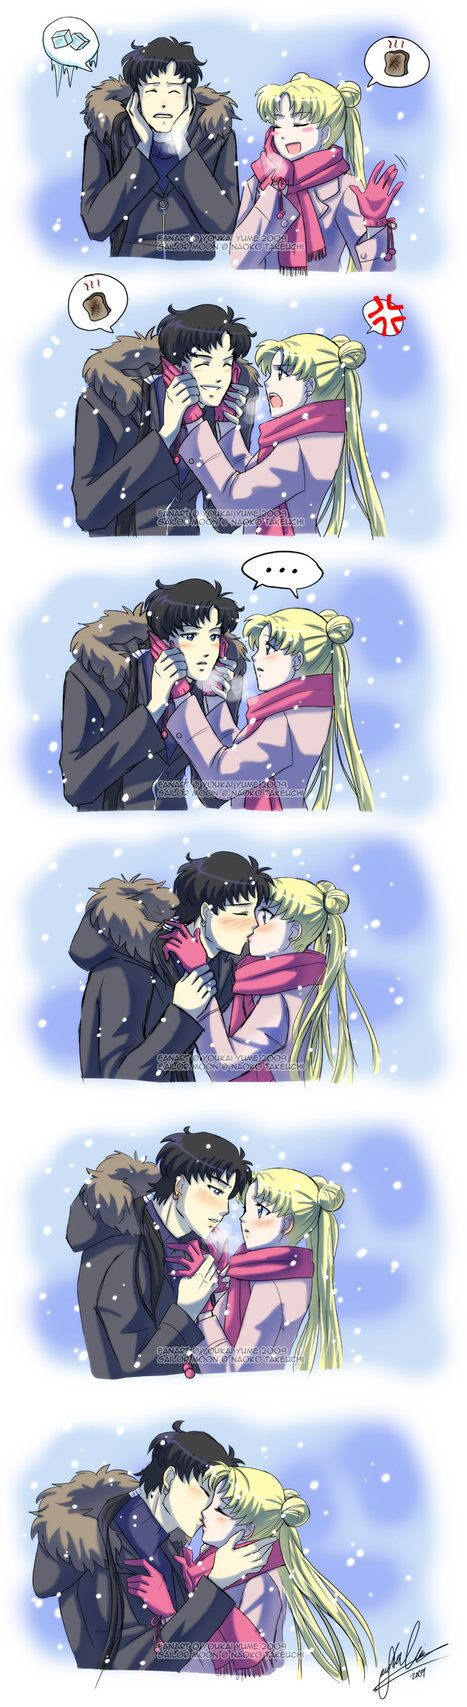 Serena and Seiya - I don't like them together, because Serena and Darien forever, but this is pretty cute.